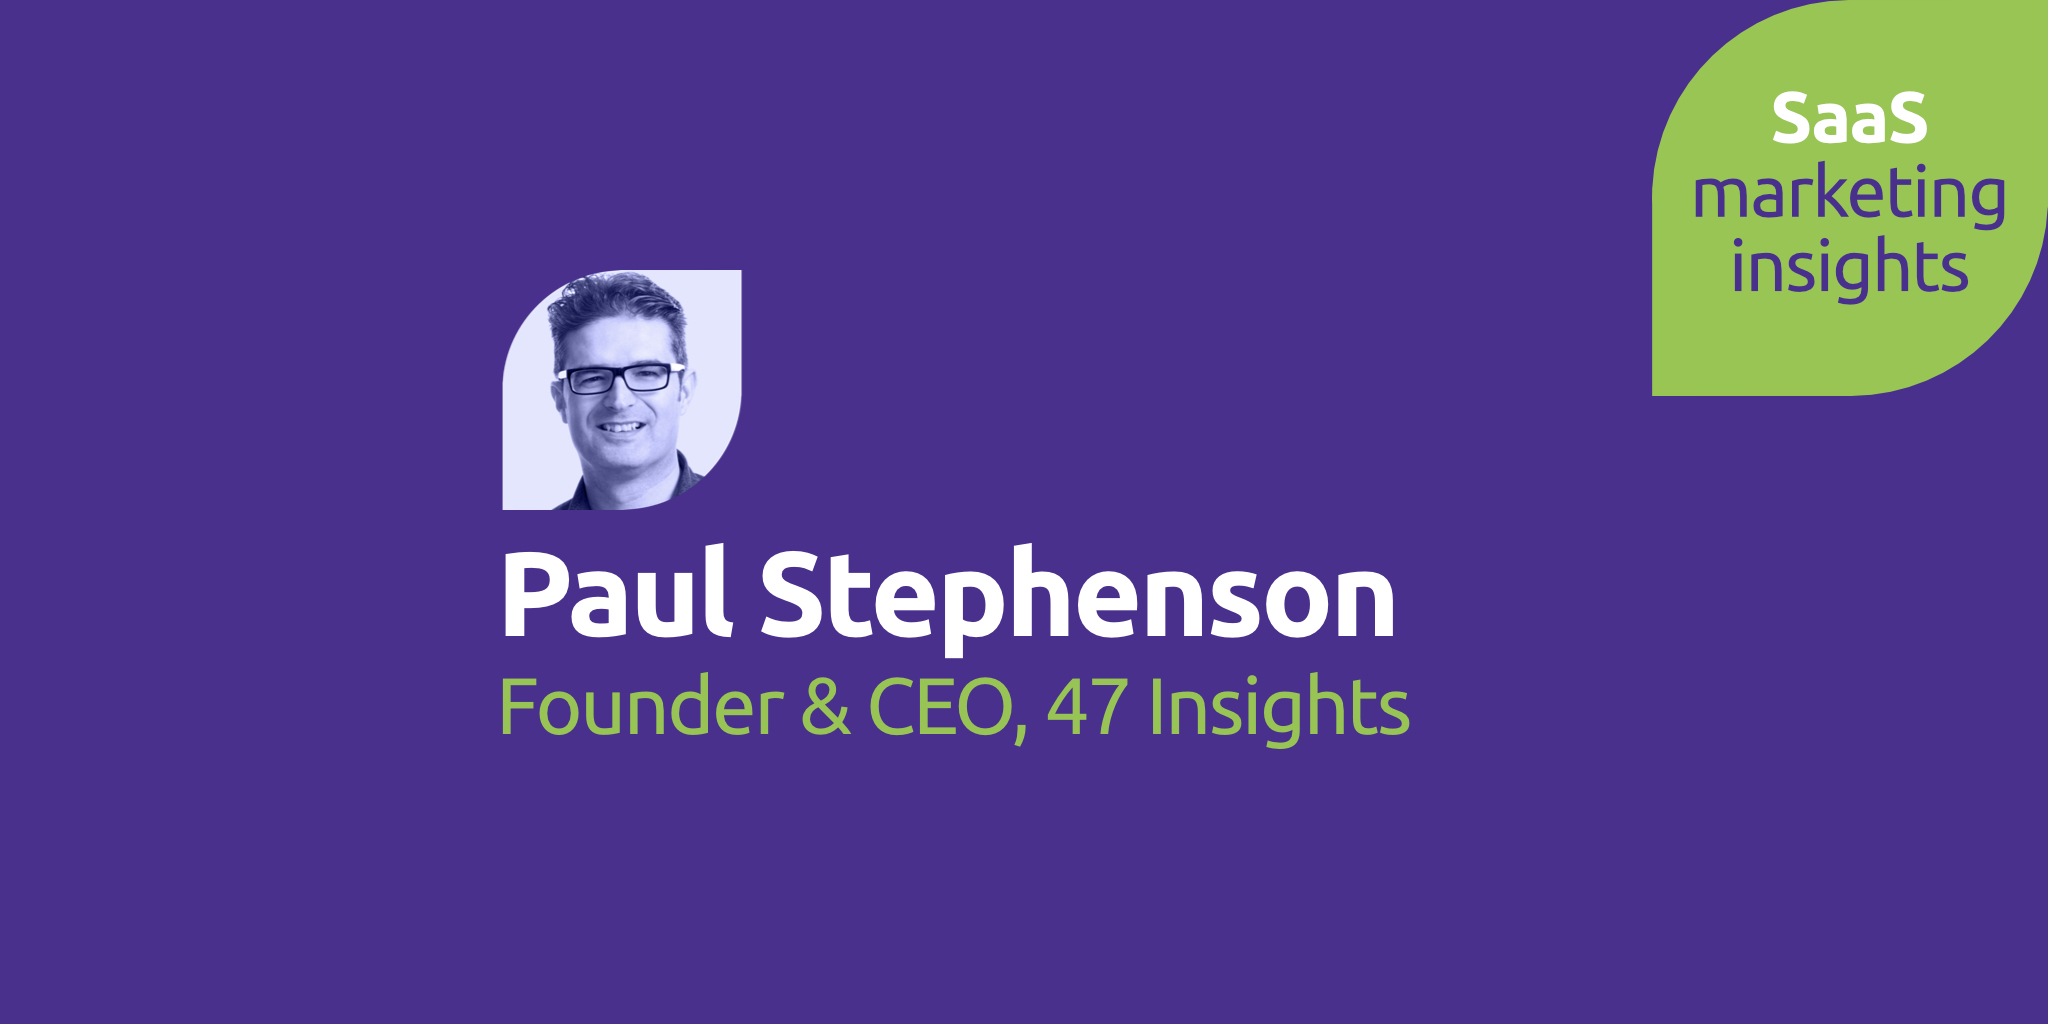 Paul Stephenson, 47 Insights